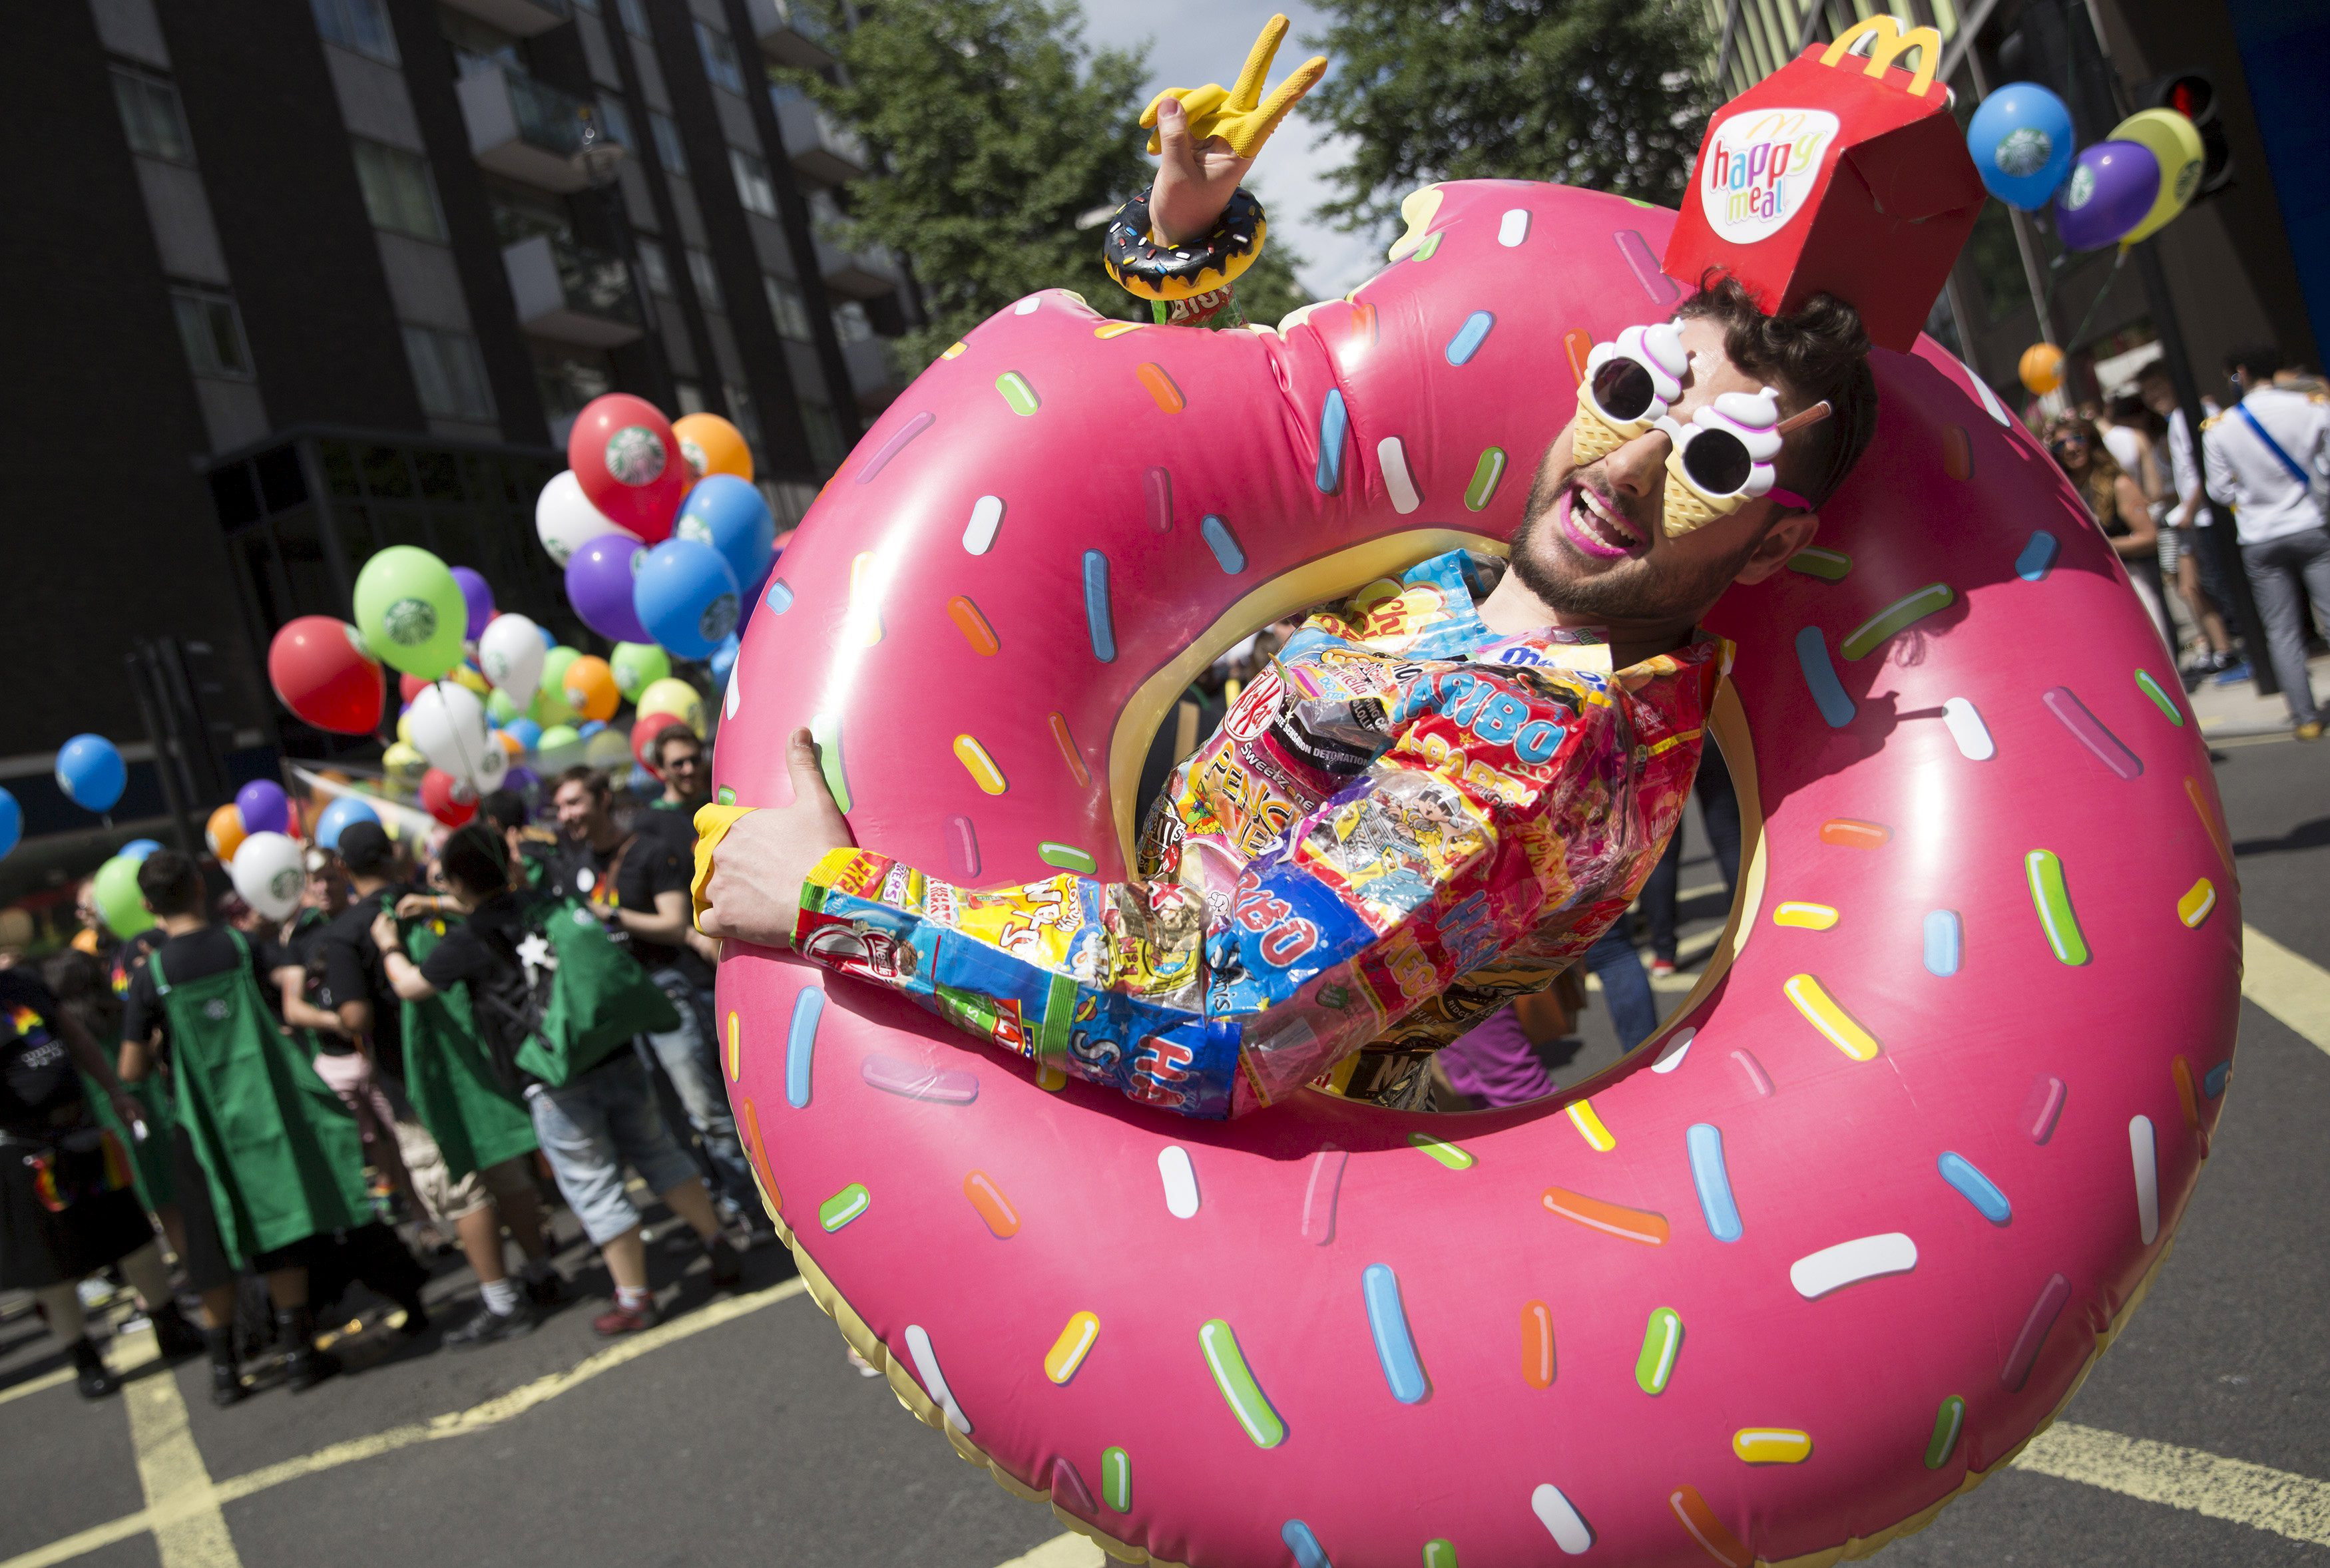 A participant takes part in the annual Pride in London Parade on June 27, 2015 in London.